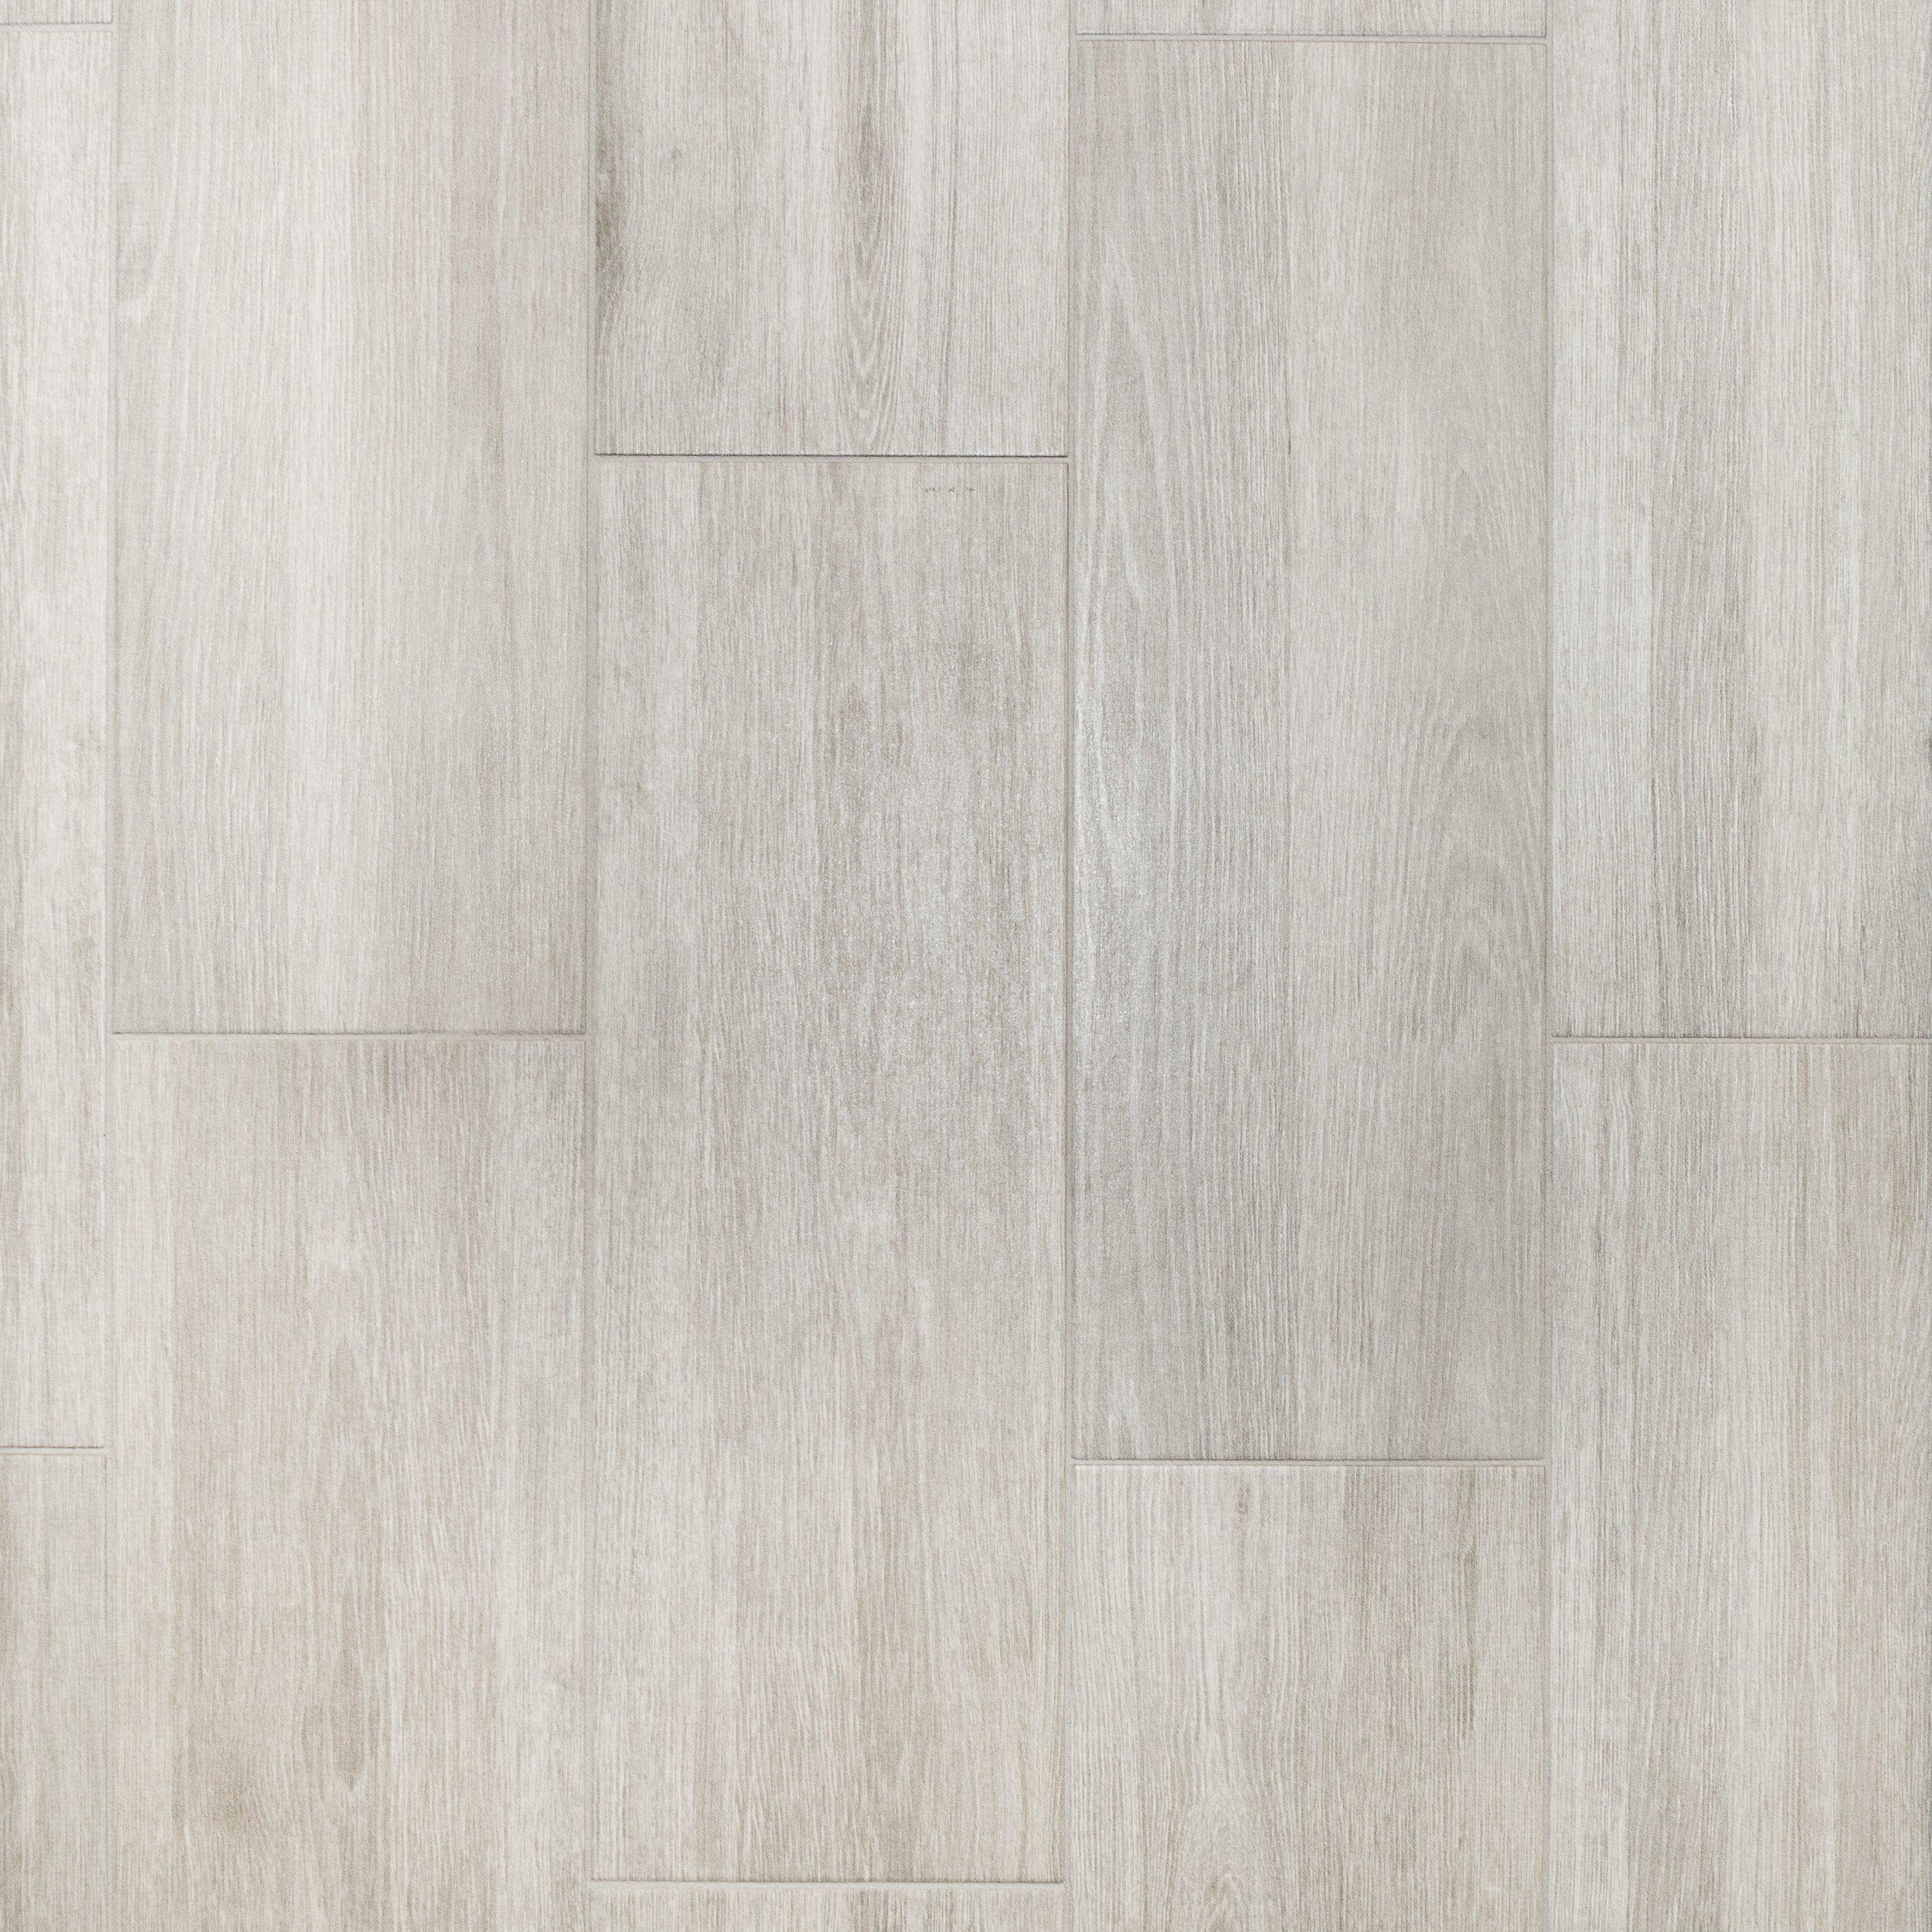 Ronne Gris Wood Plank Ceramic Tile Bathroom Floor Decor